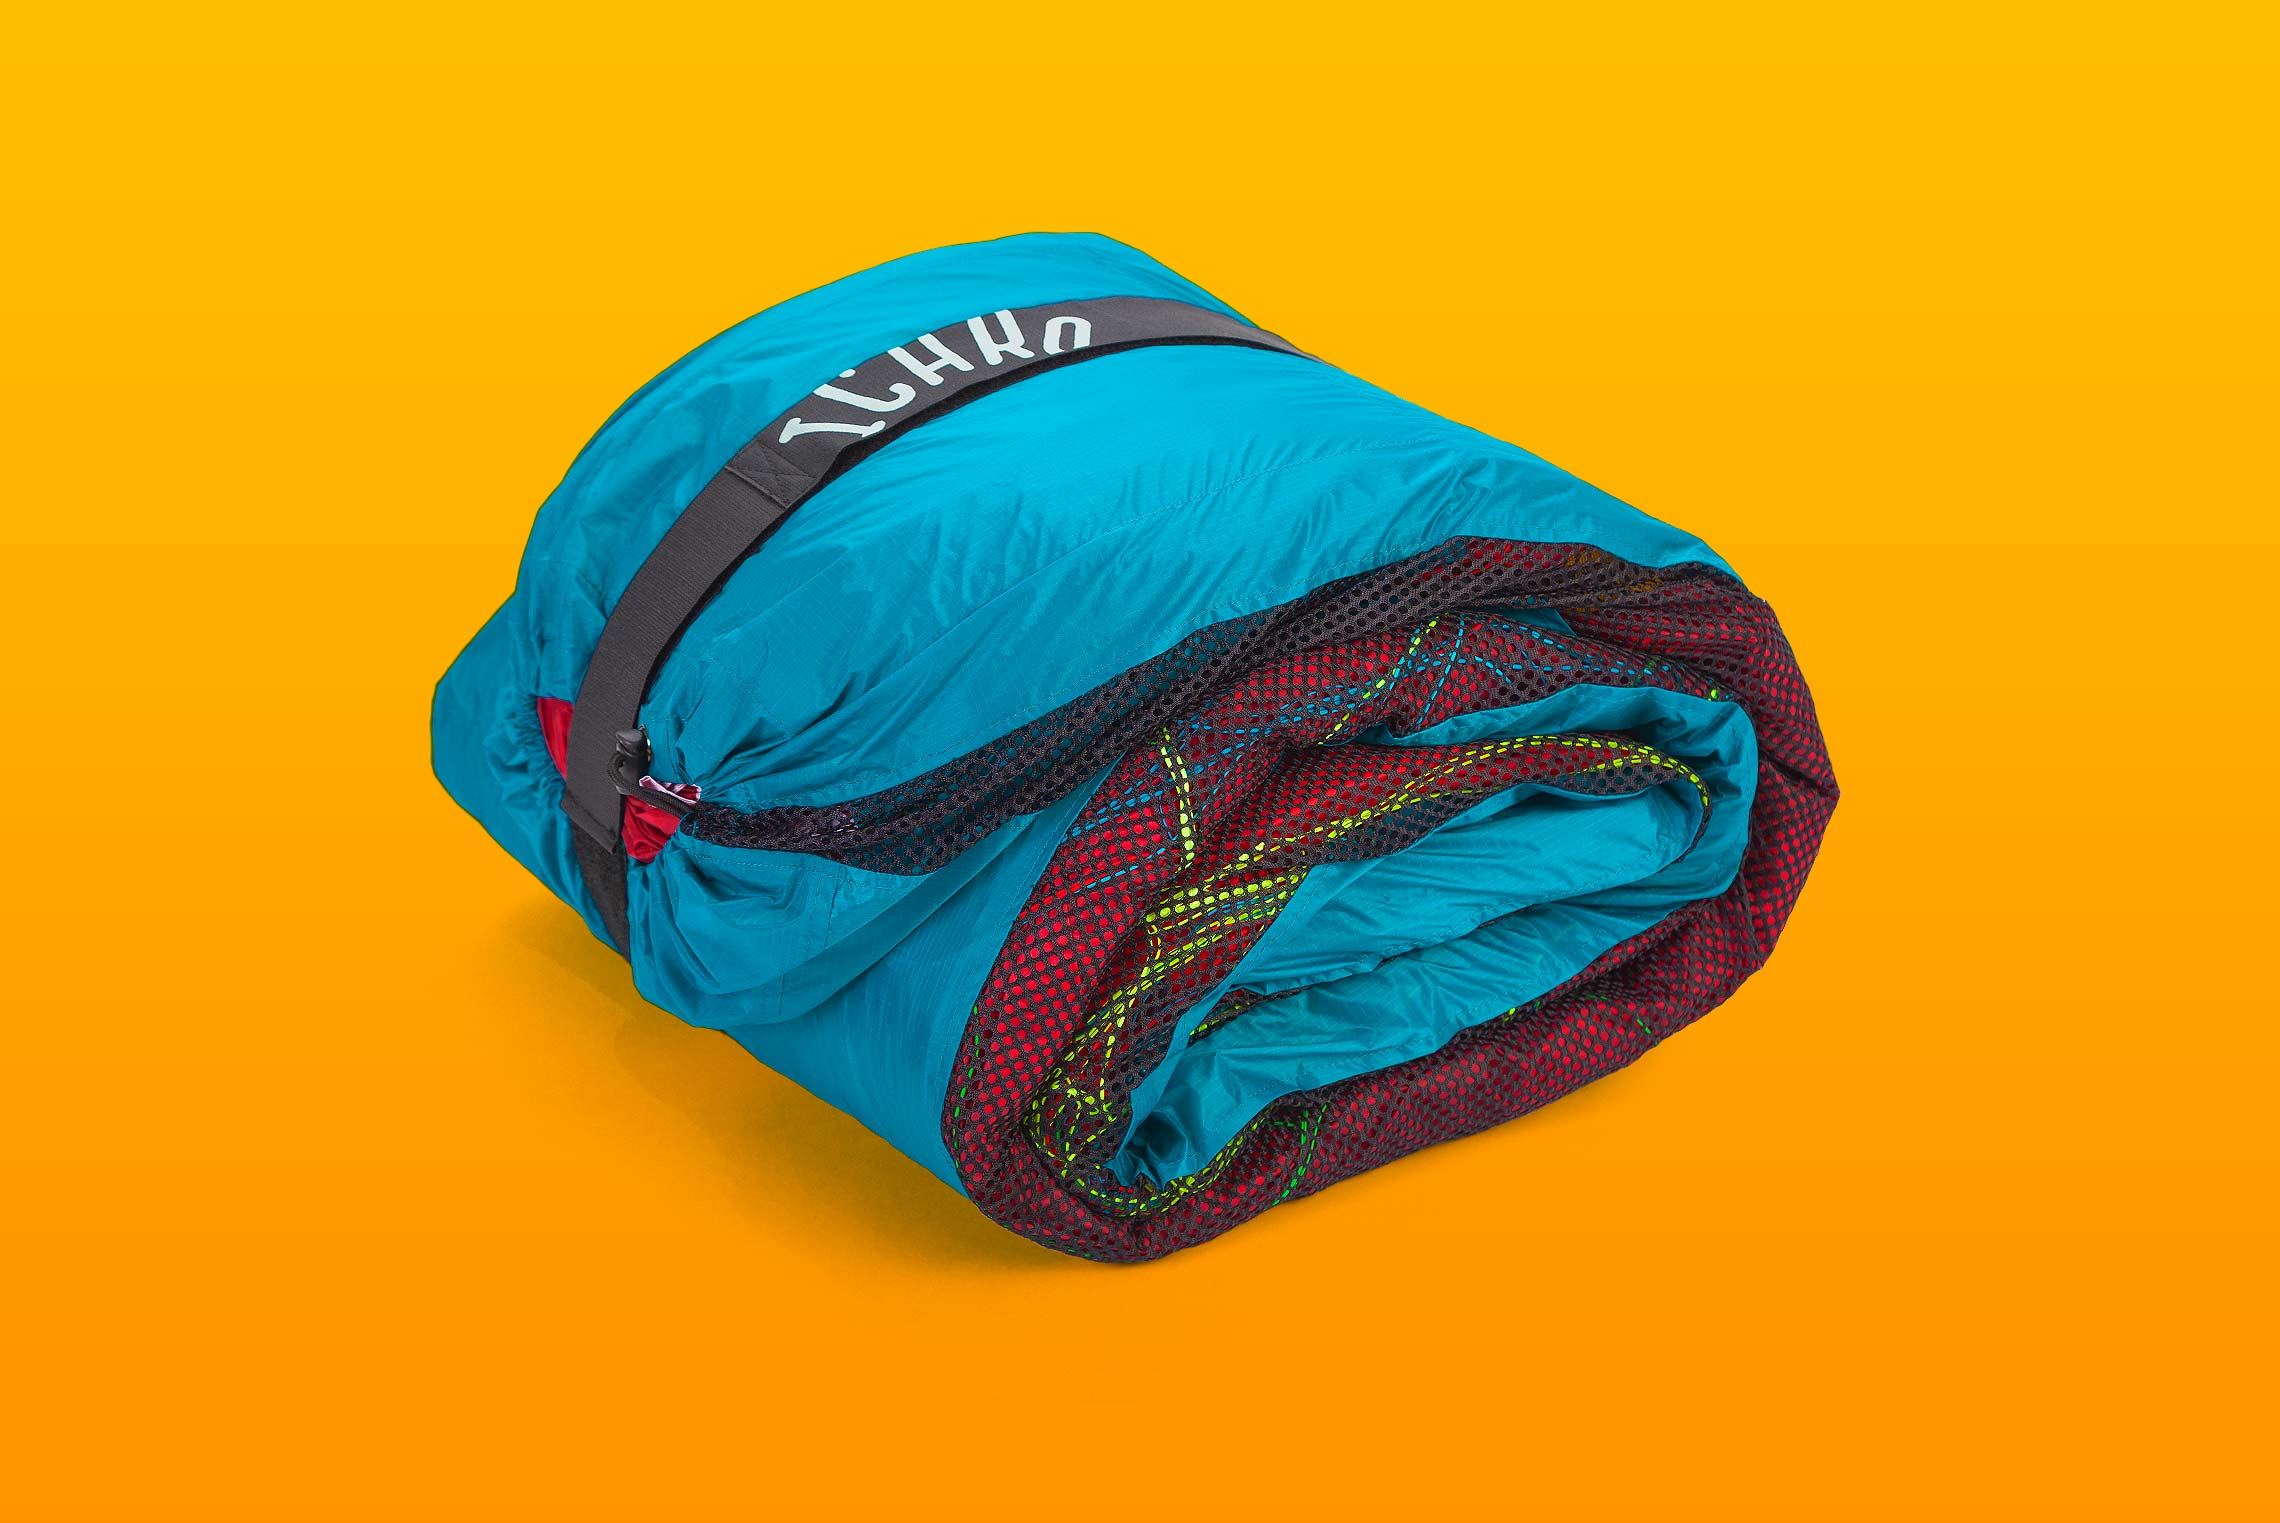 icaro-paragliders-cell-bag_2015_02